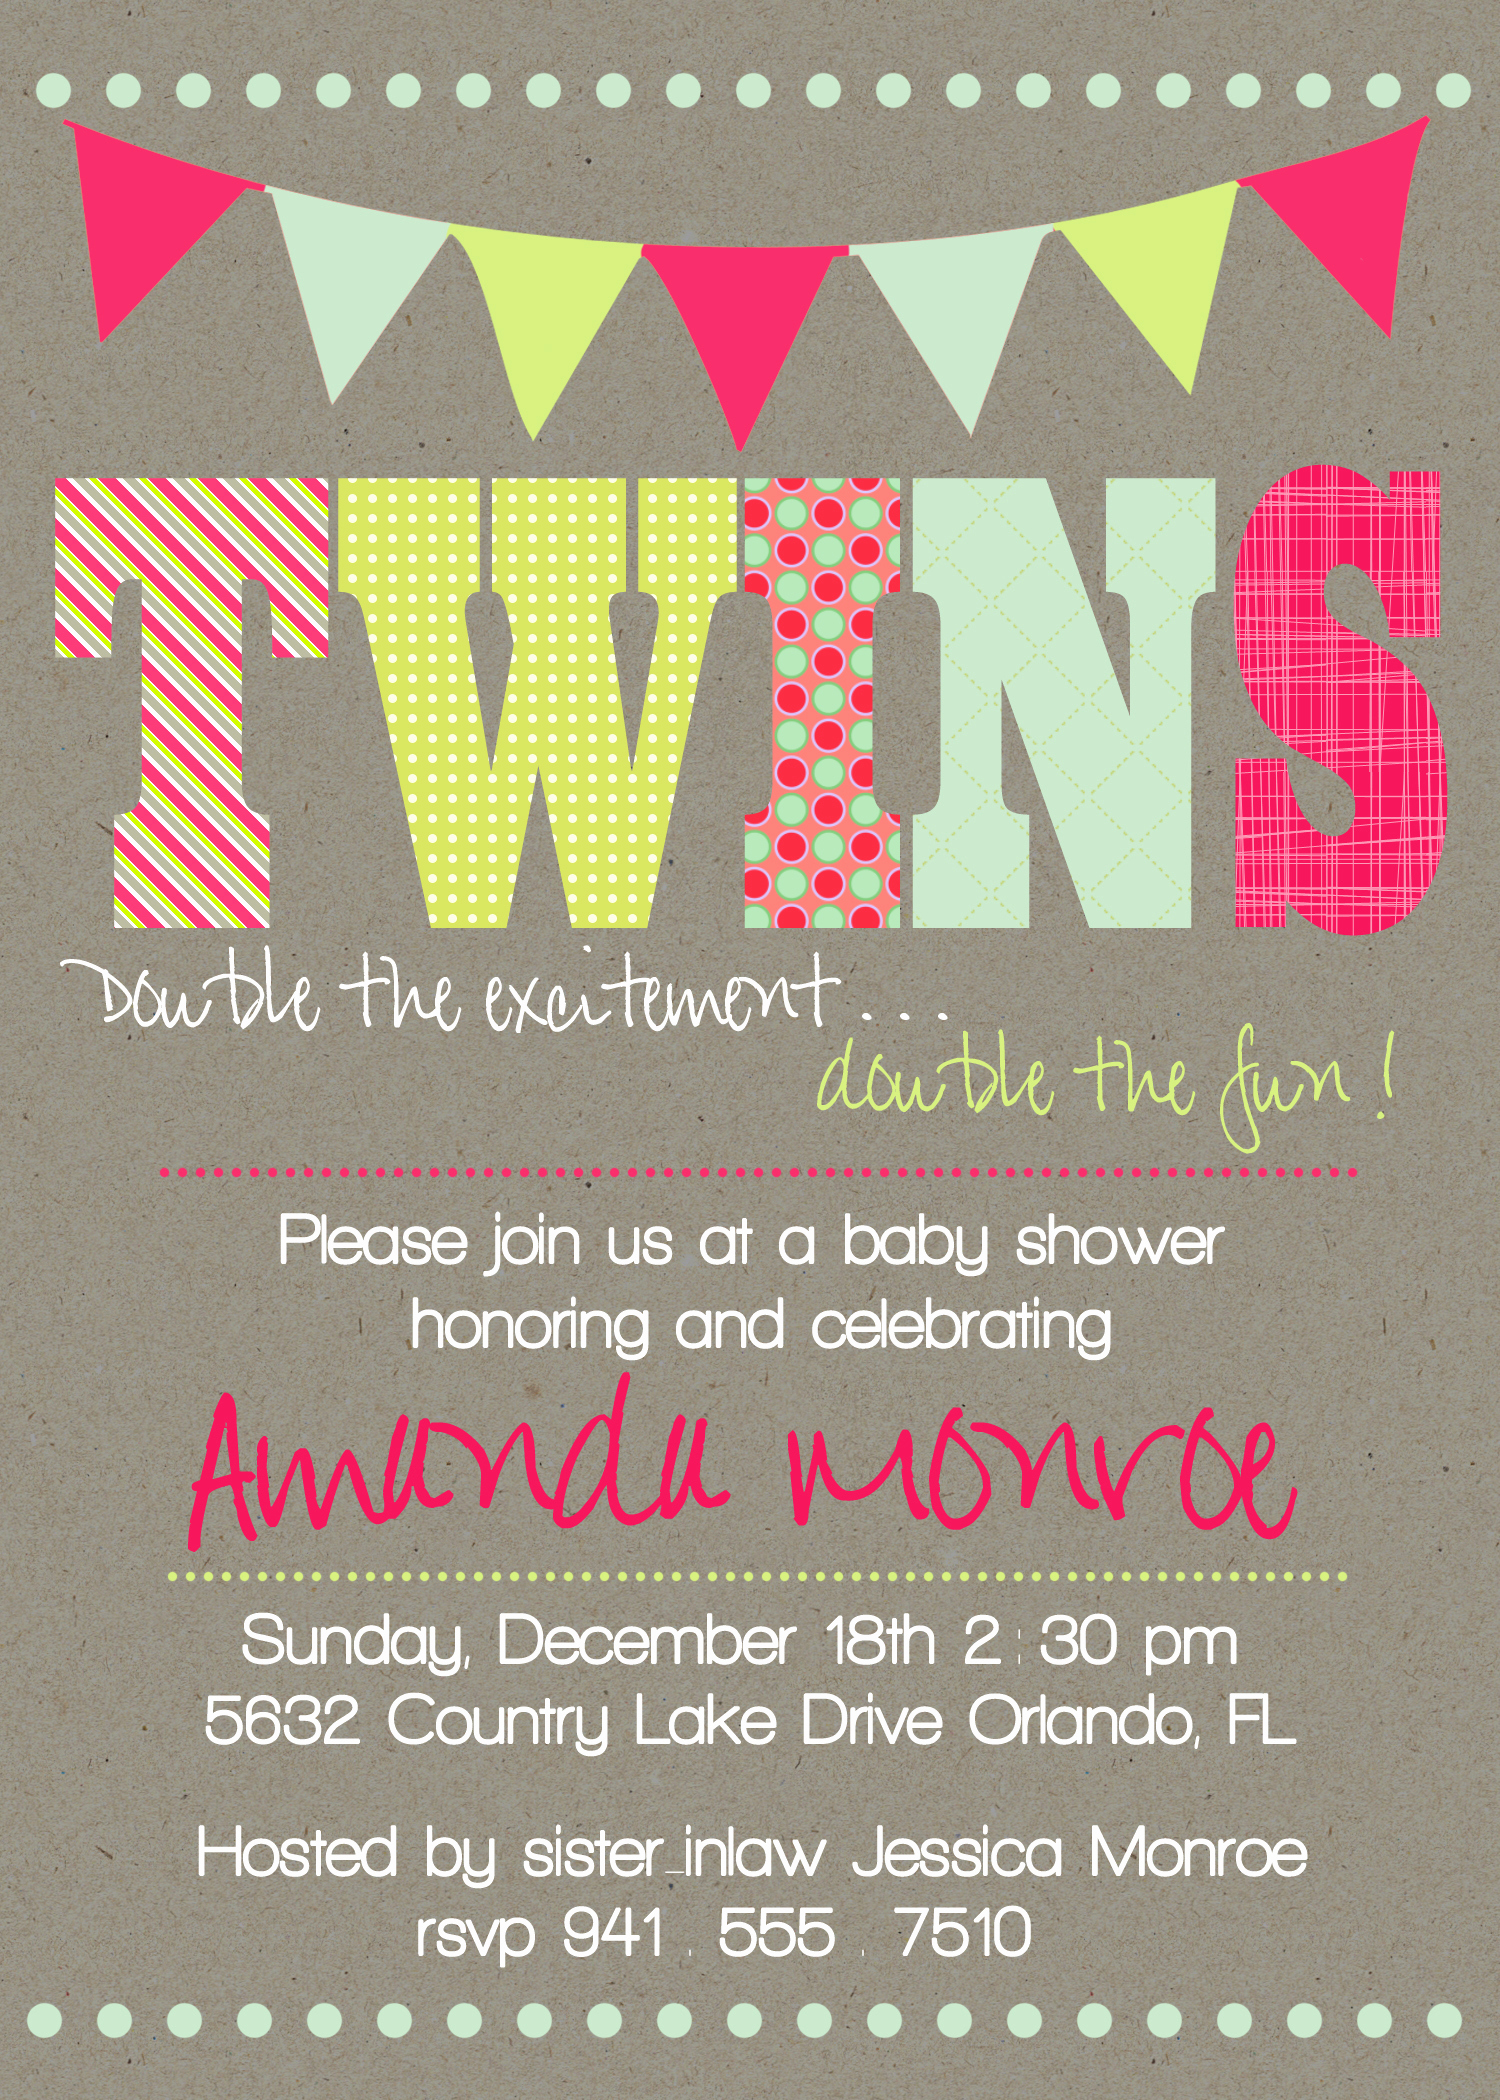 Twin Baby Shower Invitation Wording Elegant Tie Dye Birthday Party Invitations